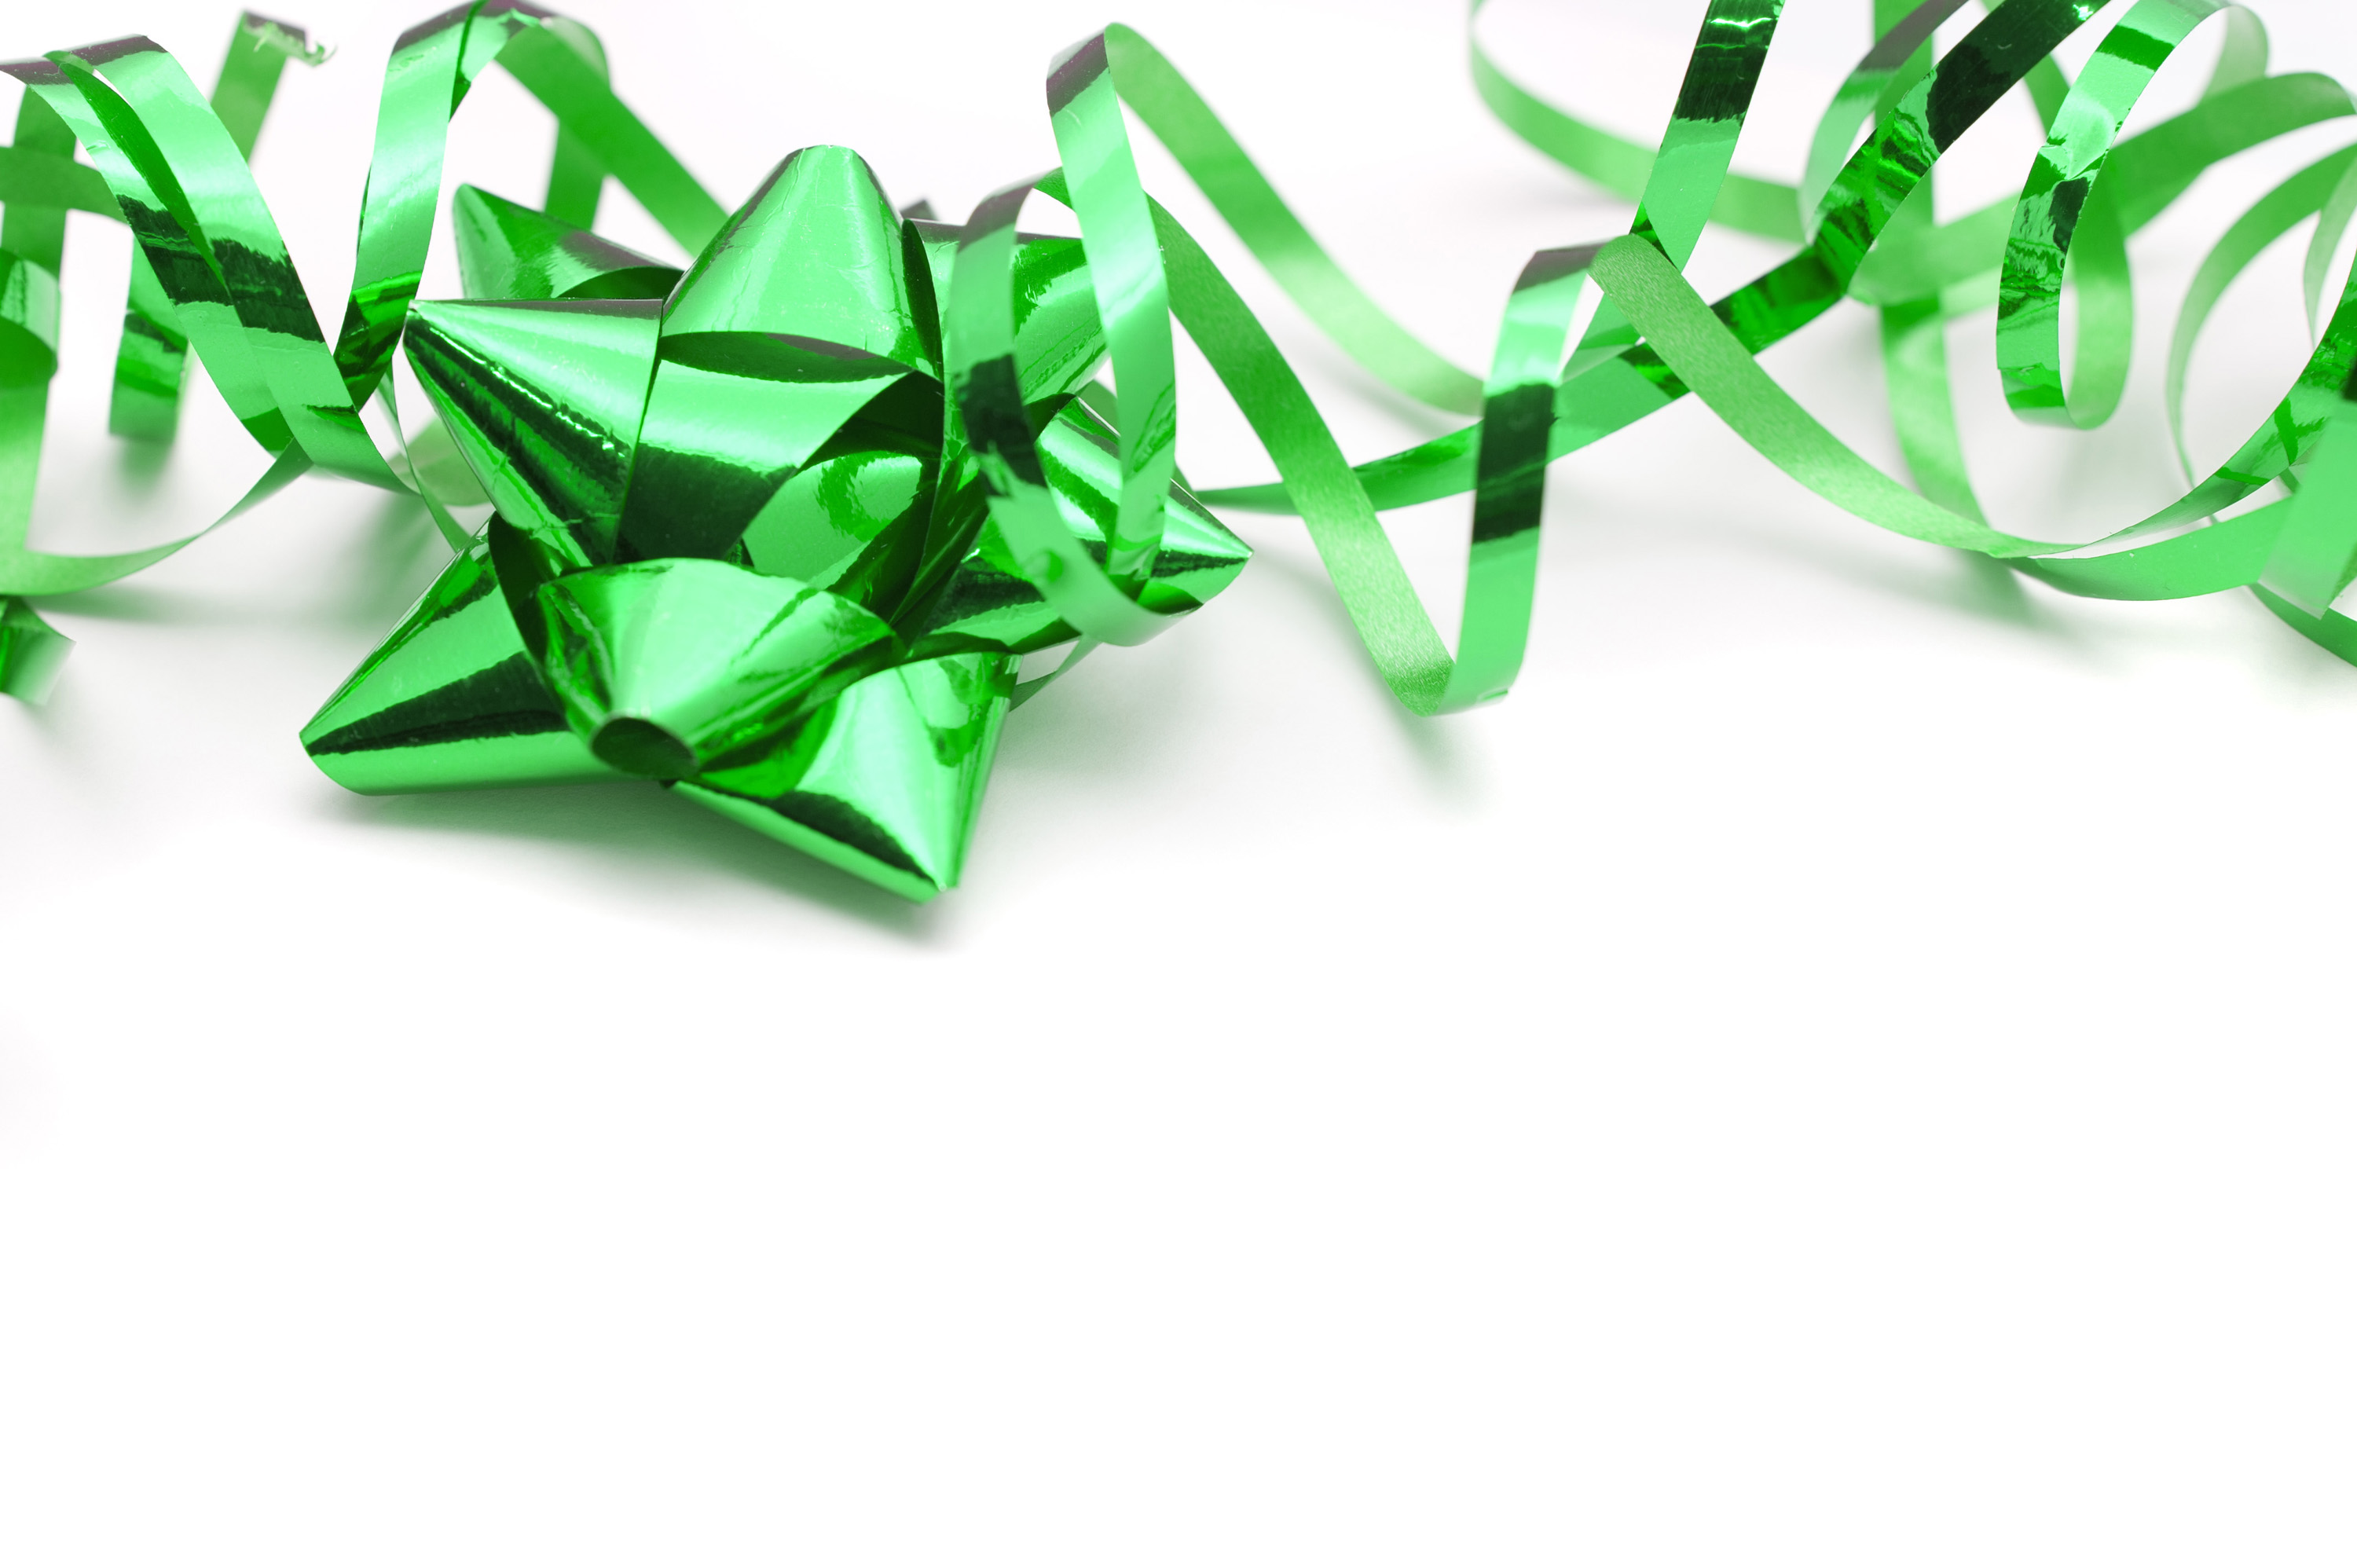 Festive metallic green bow and twirled ribbon for gift wrapping Christmas gifts or presents for a special occasion on a white background with copyspace